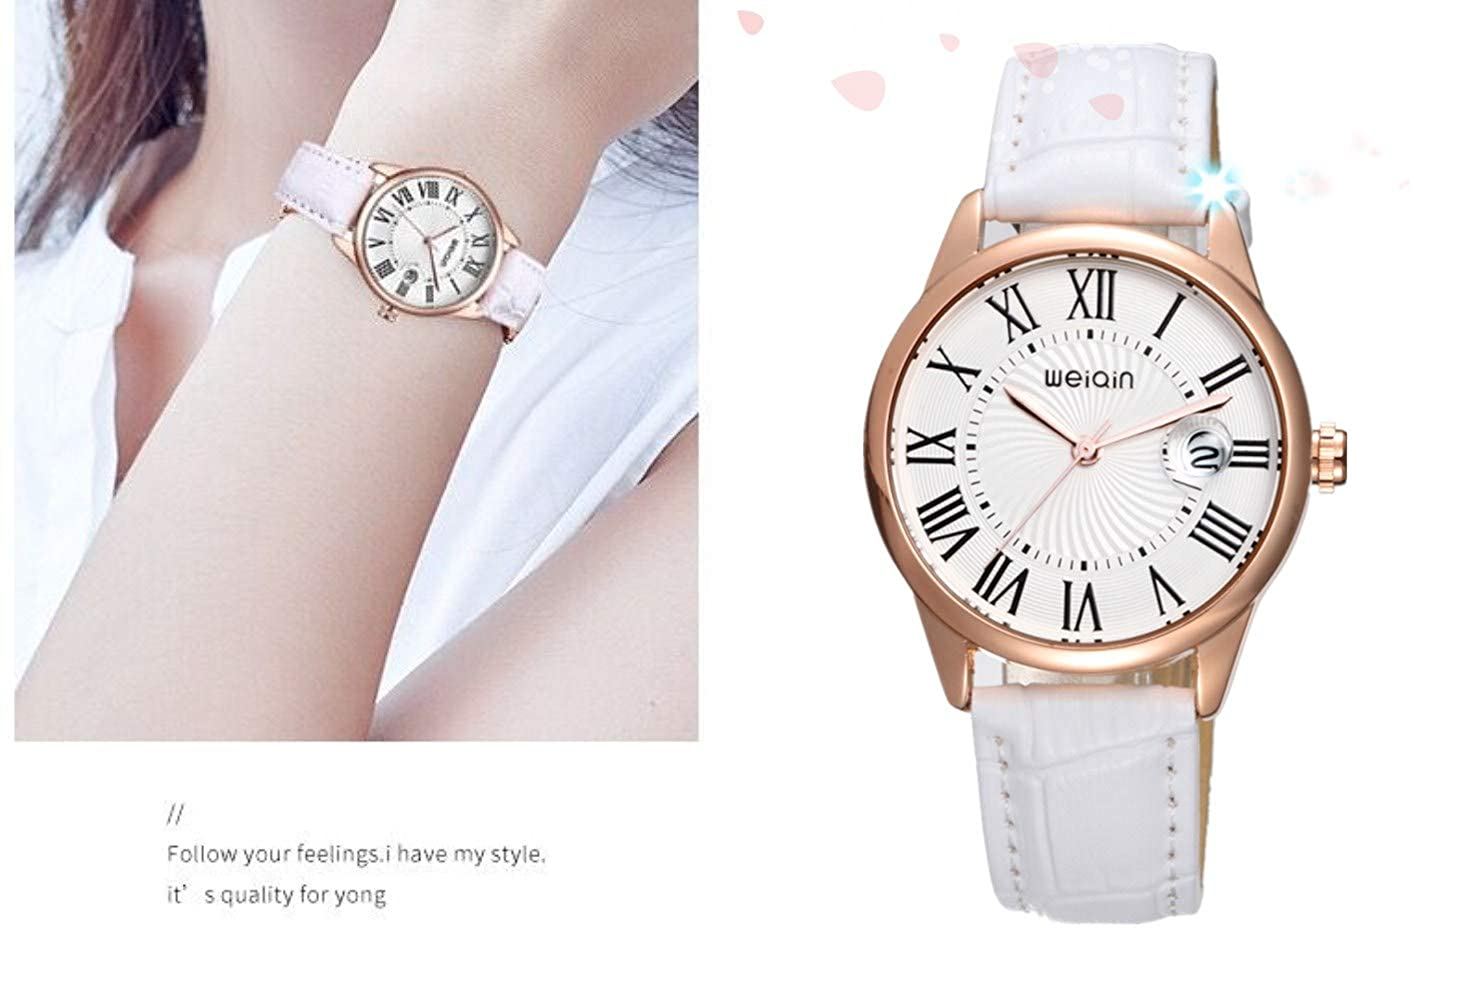 Amazon.com: Fashion Women Leather Watches,Classic Simple Ladies Dress Watches Waterproof (White): Watches